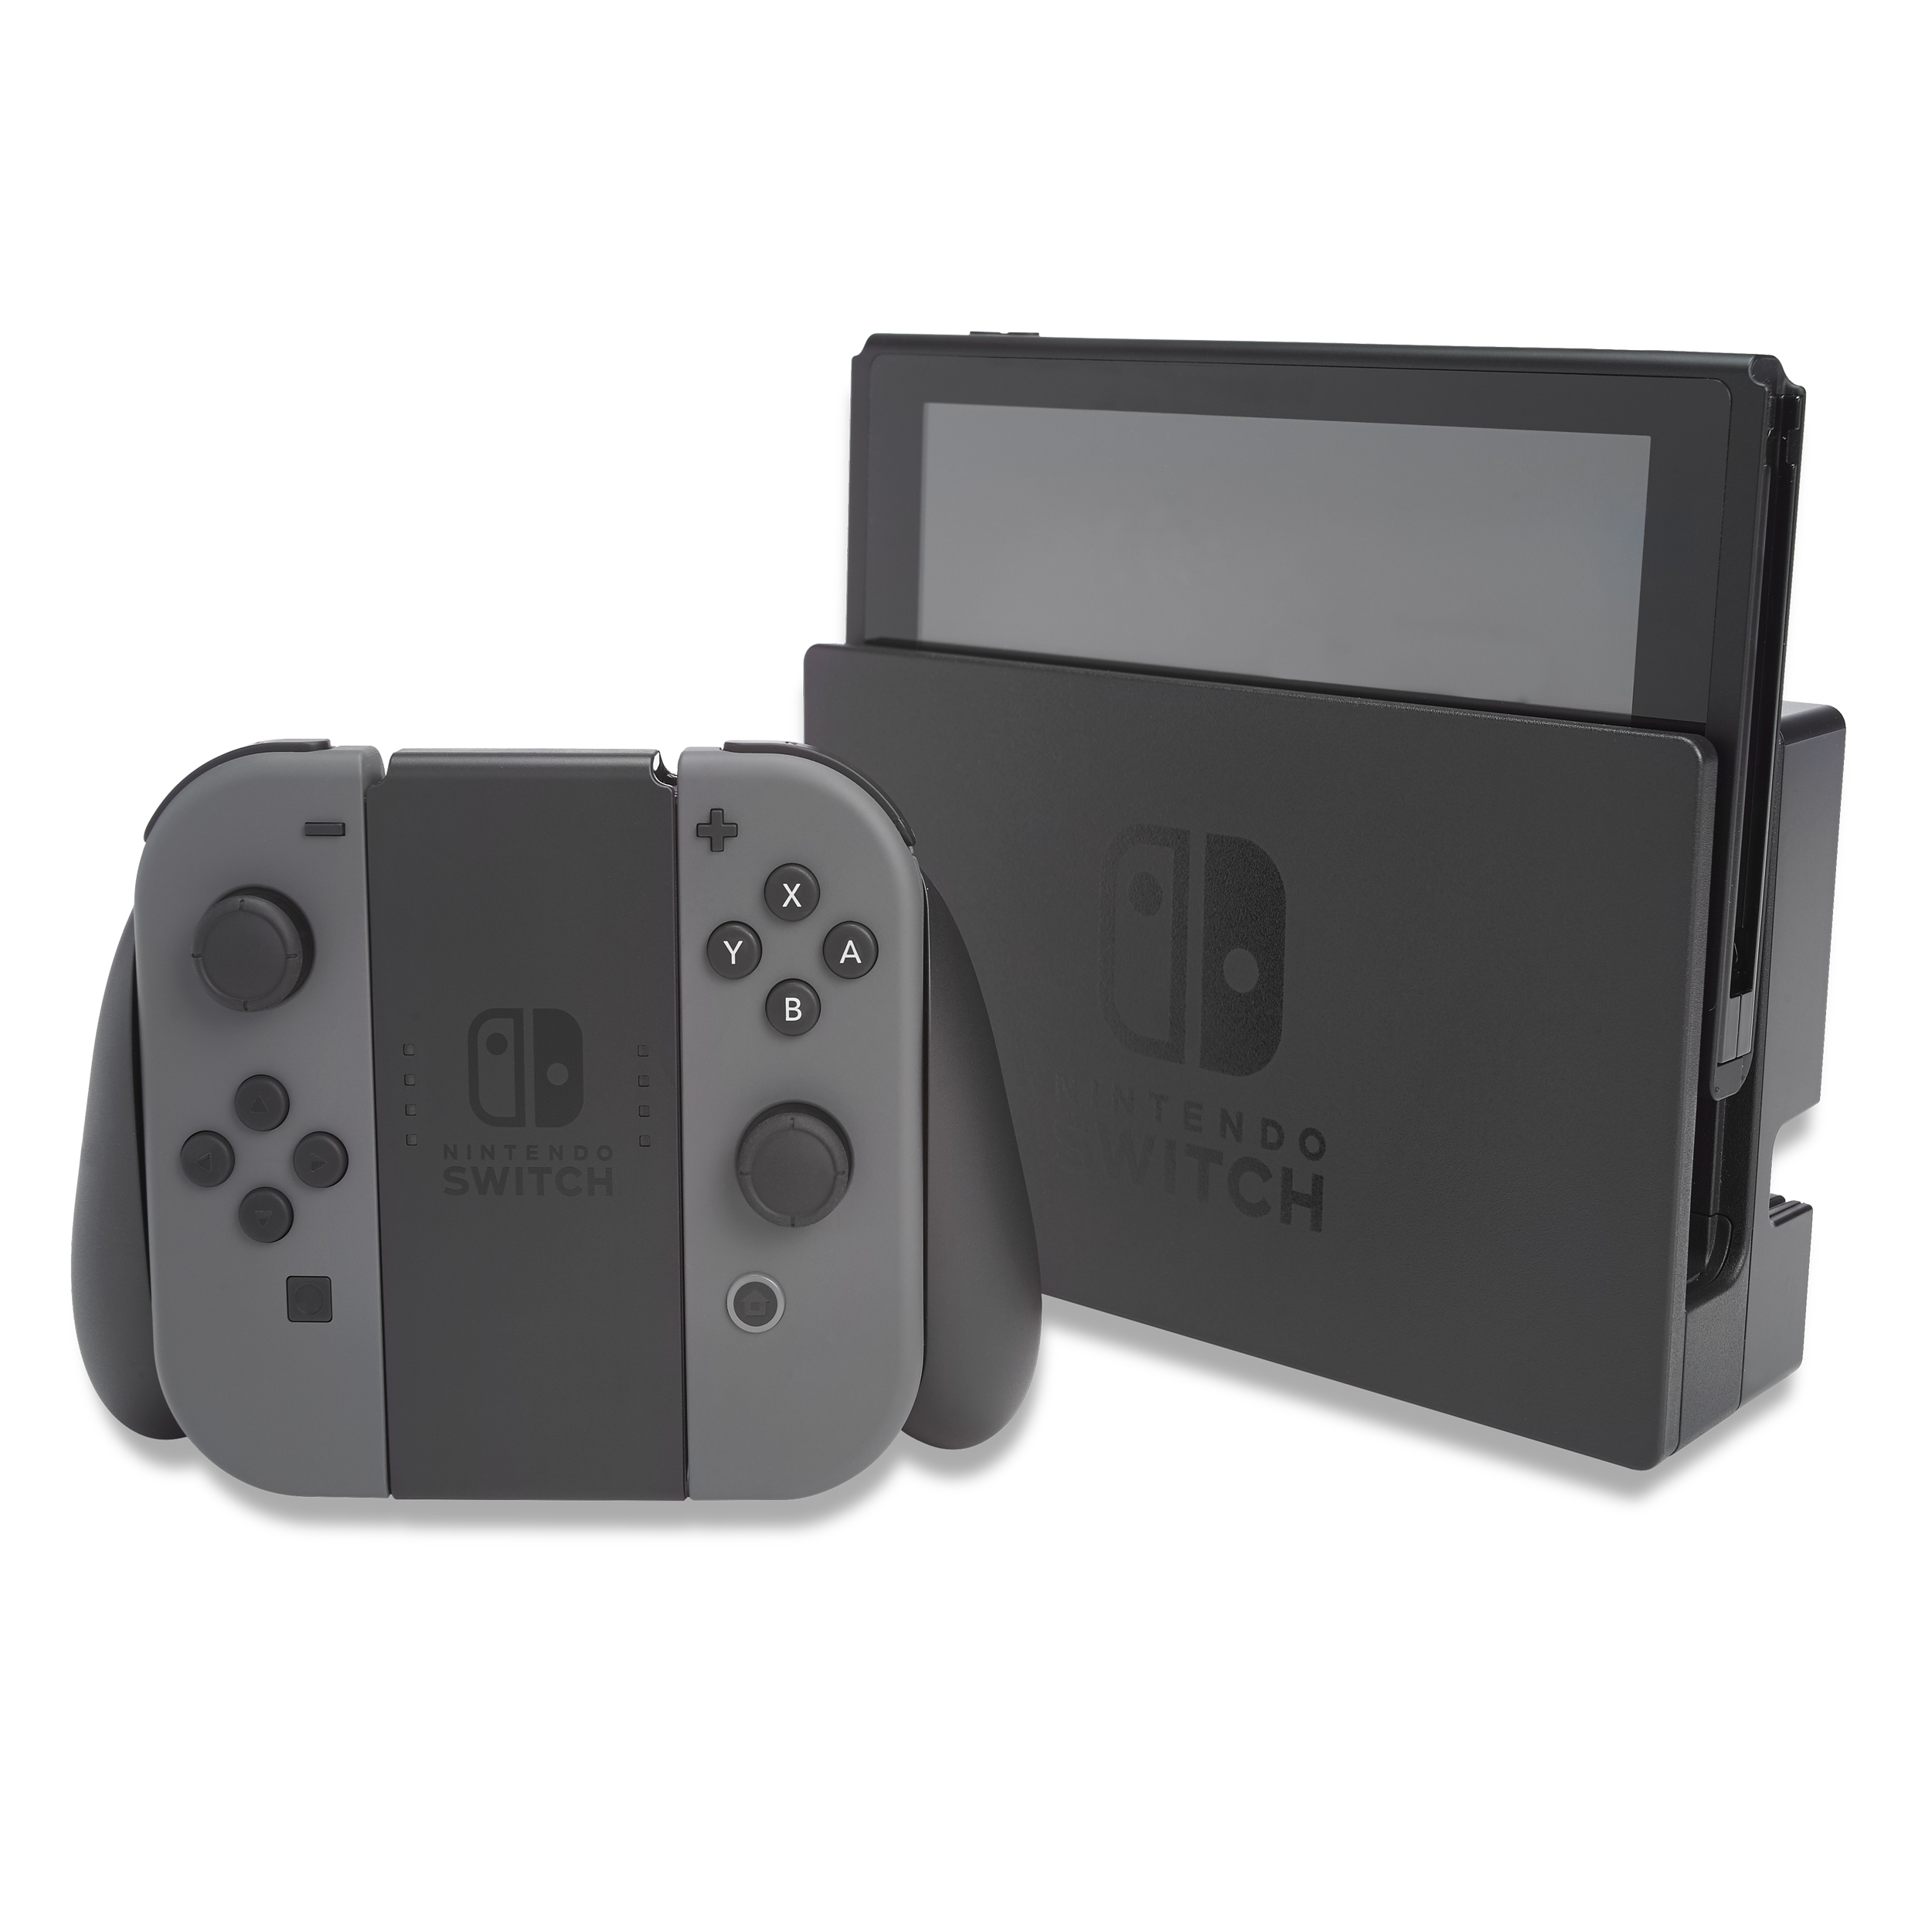 Nintendo Switch  - At home: connects on your TV - On the go: directly on the Switch - Solo gaming or possibility of multiplayer